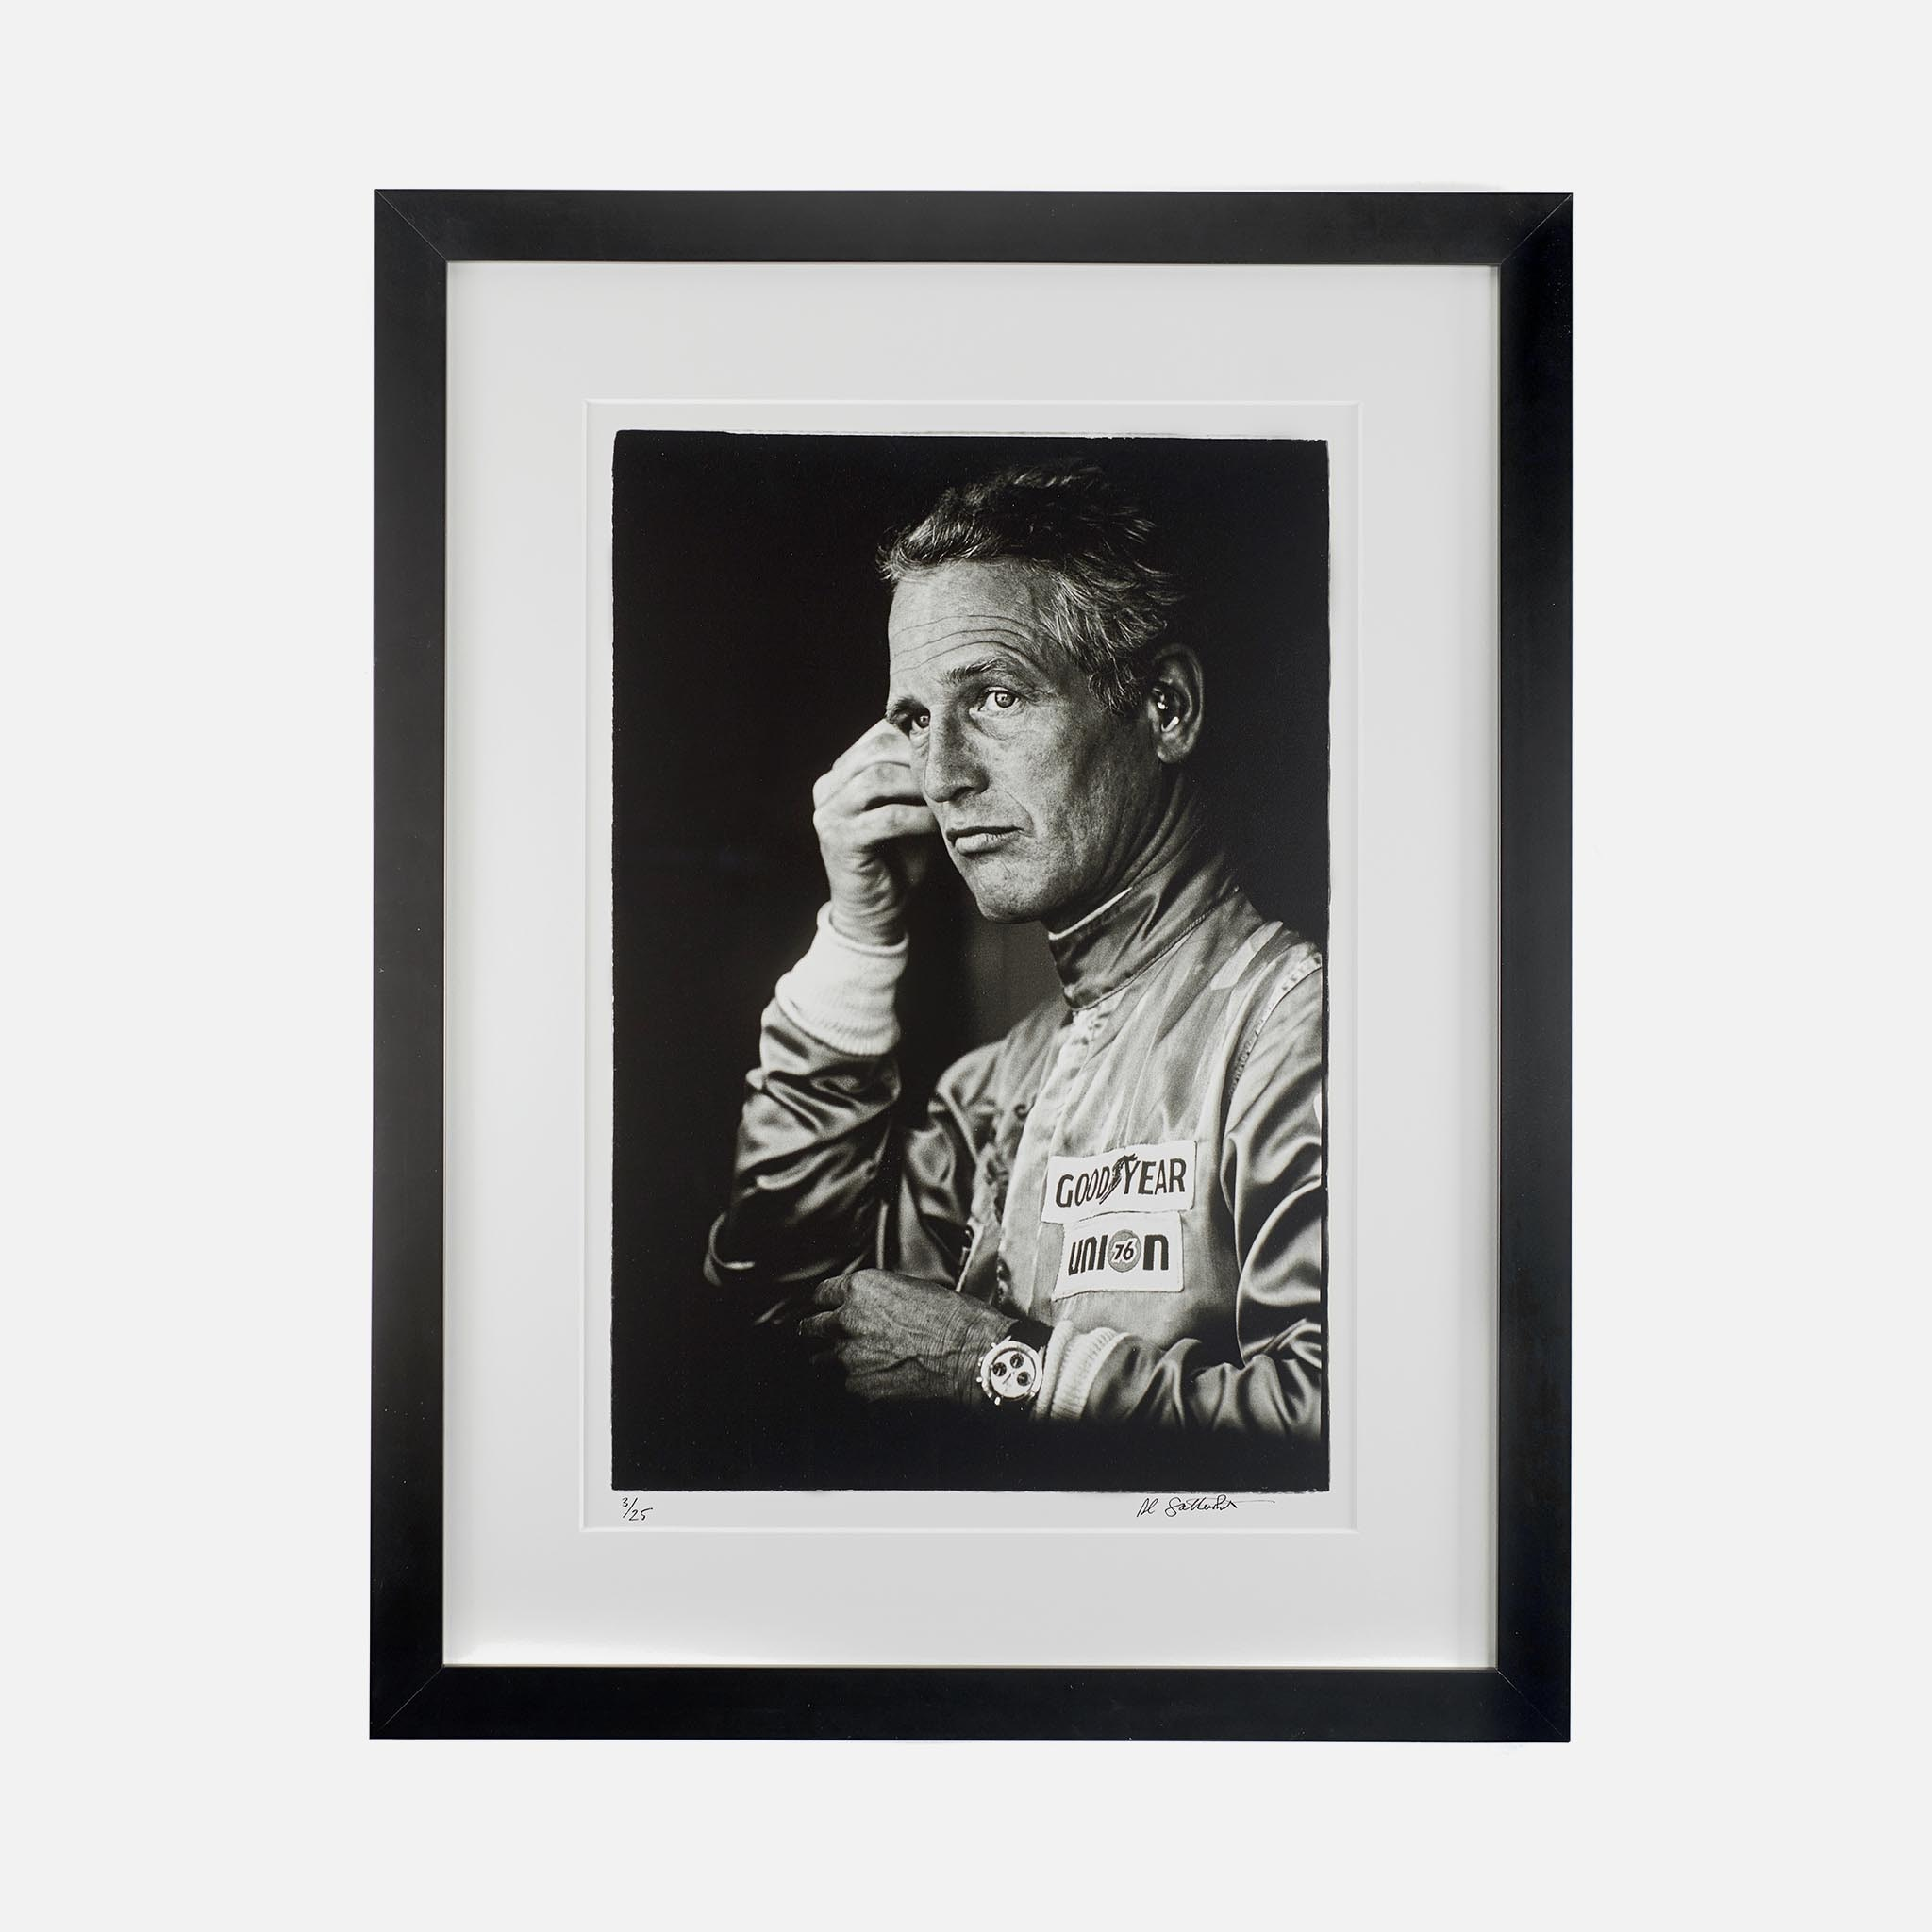 Introducing: The Al Satterwhite Signed Paul Newman Print, Available In HODINKEE Shop In Limited Quantities NewmanPrint A 2